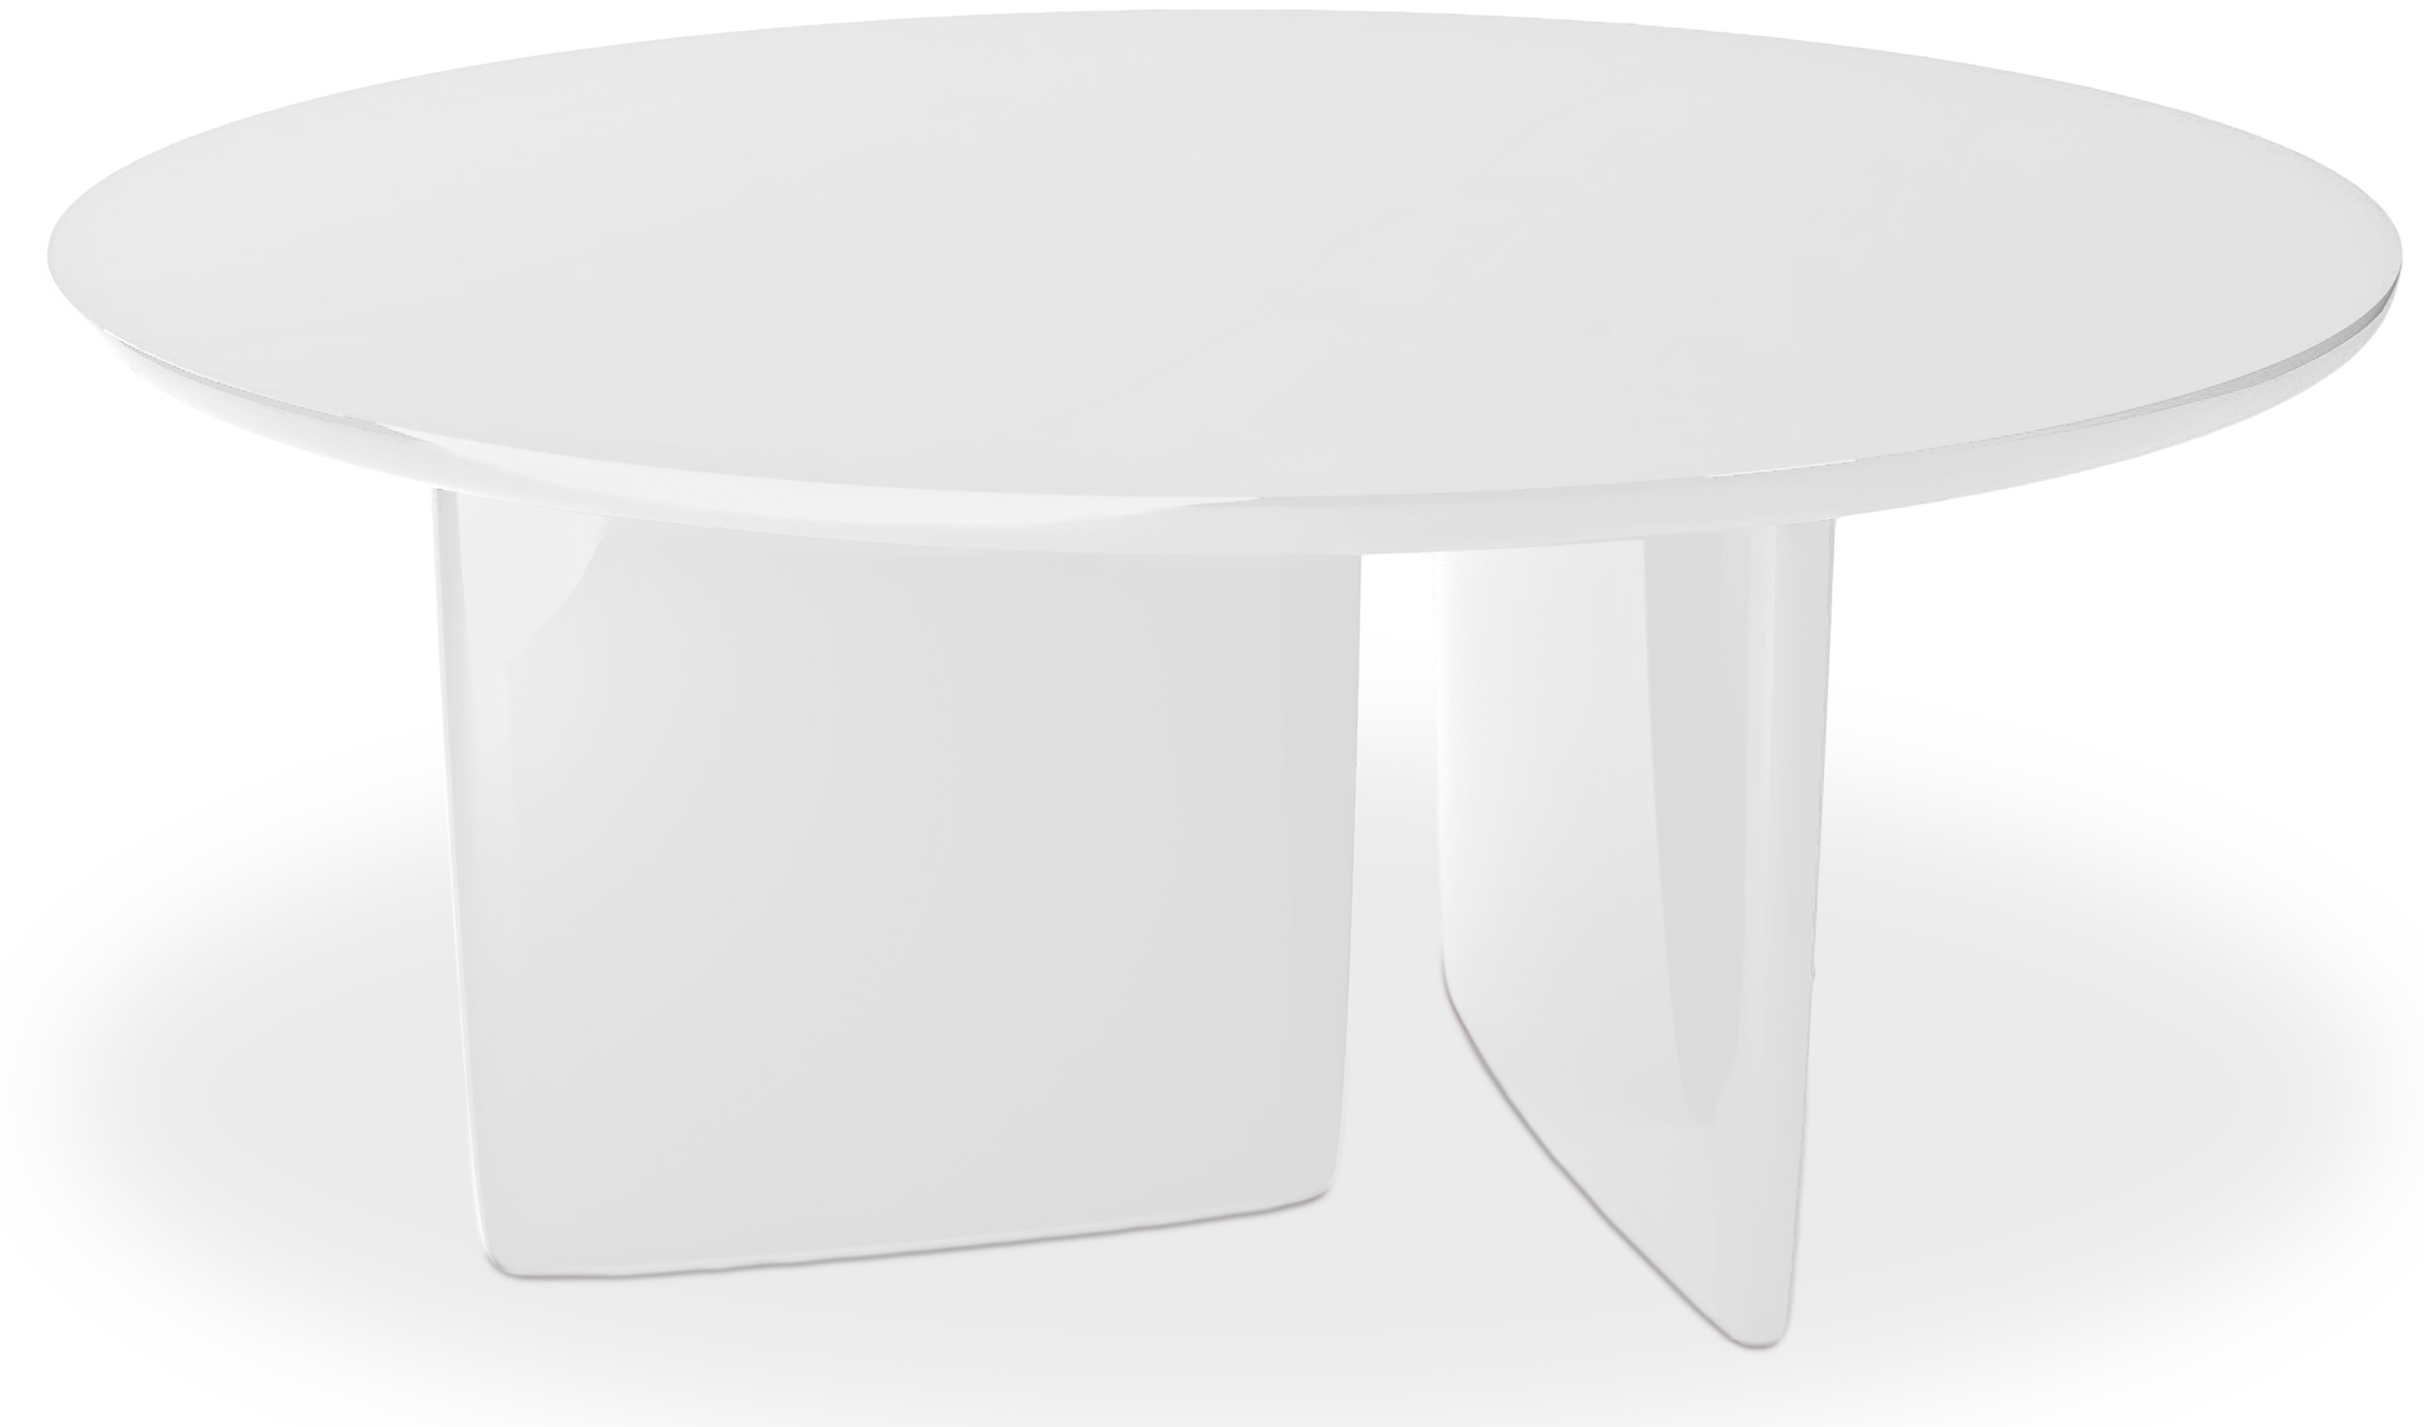 Table manger ronde laqu e blanc kare for Table a manger ronde